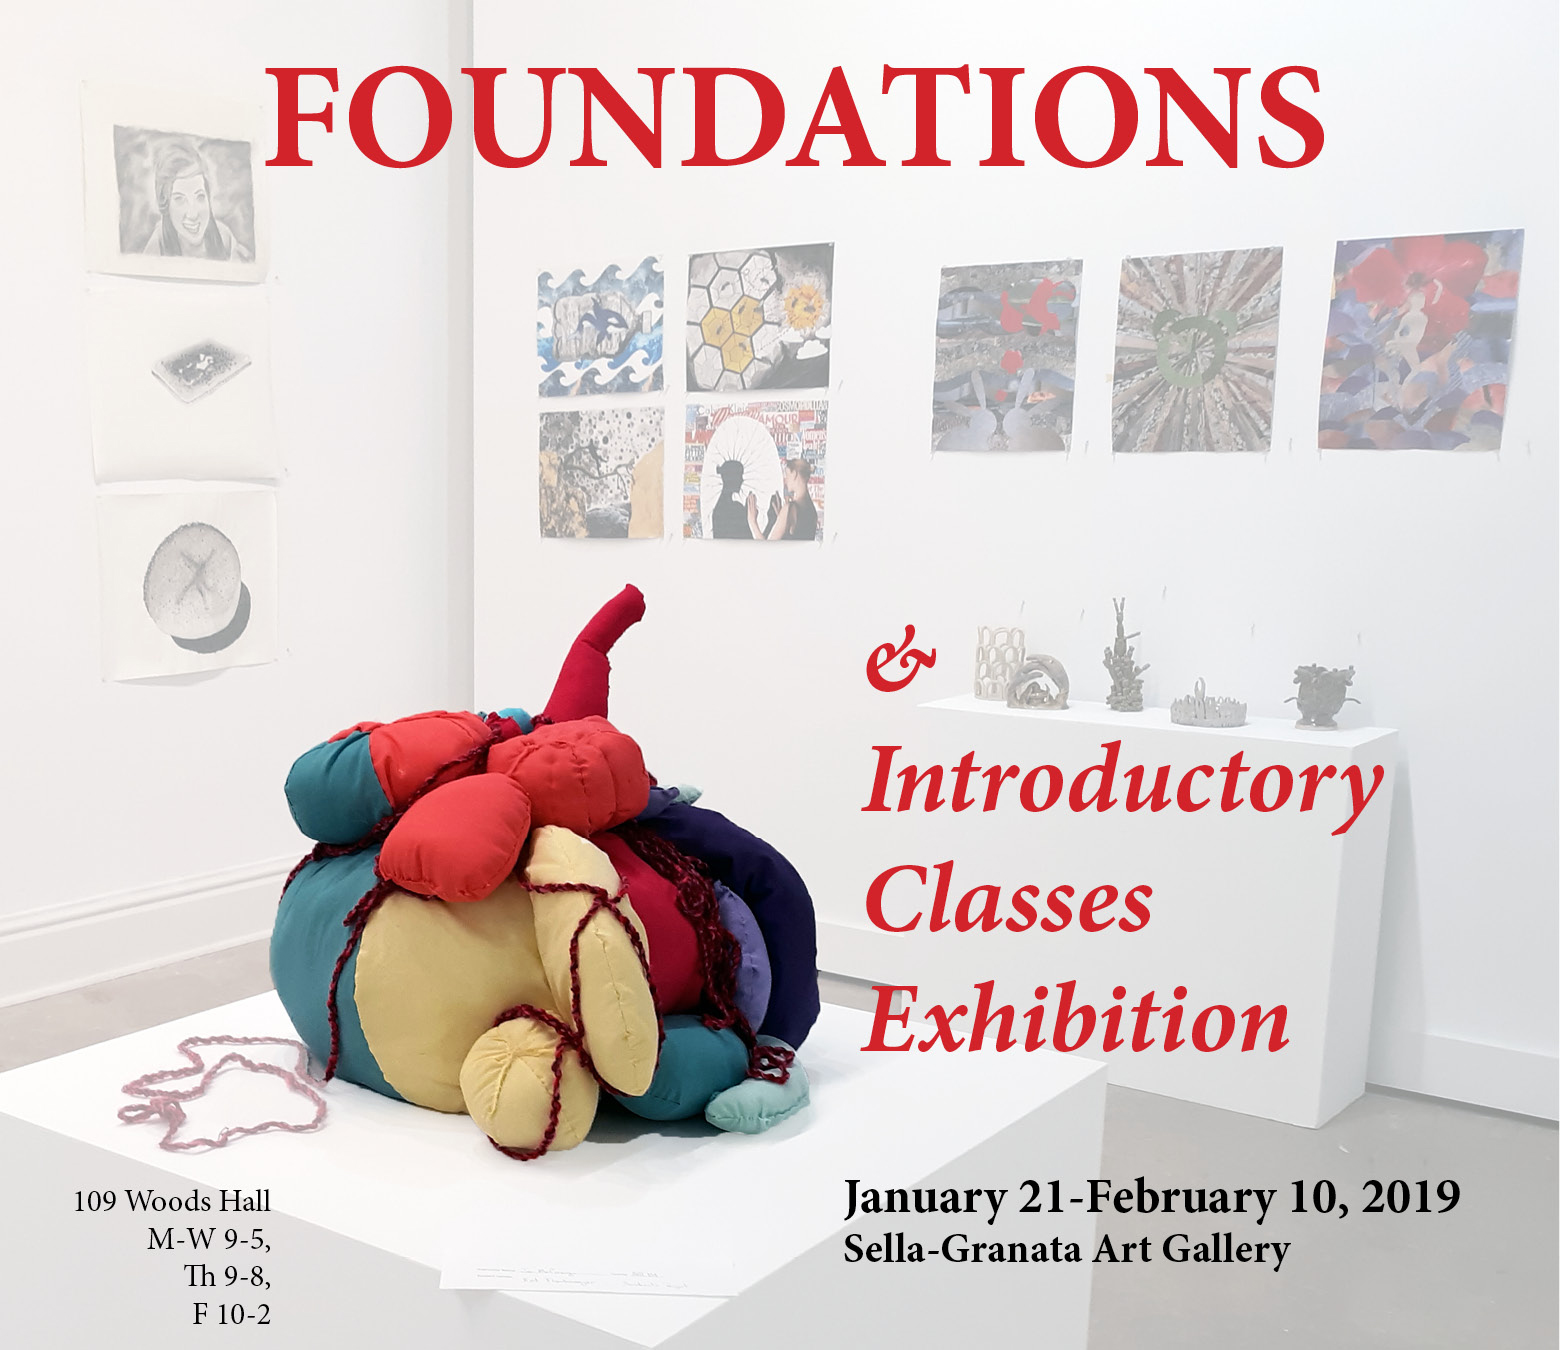 Foundations and Introductory Classes Exhibition, January 21 through February 10, 2019, in the Sella-Granata Art Gallery